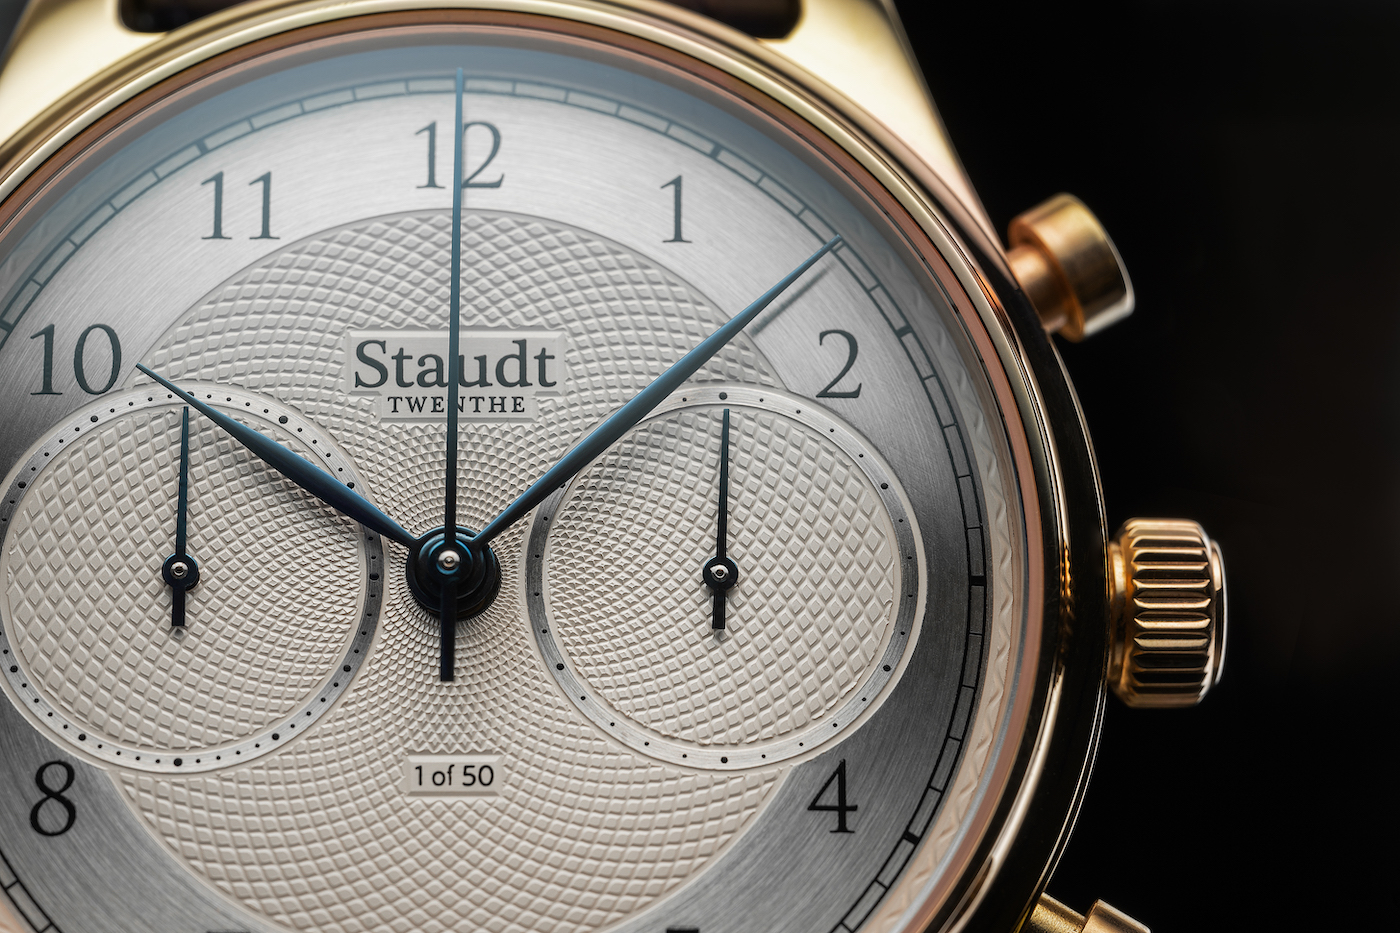 An introduction to Staudt's Guilloche Chronograph